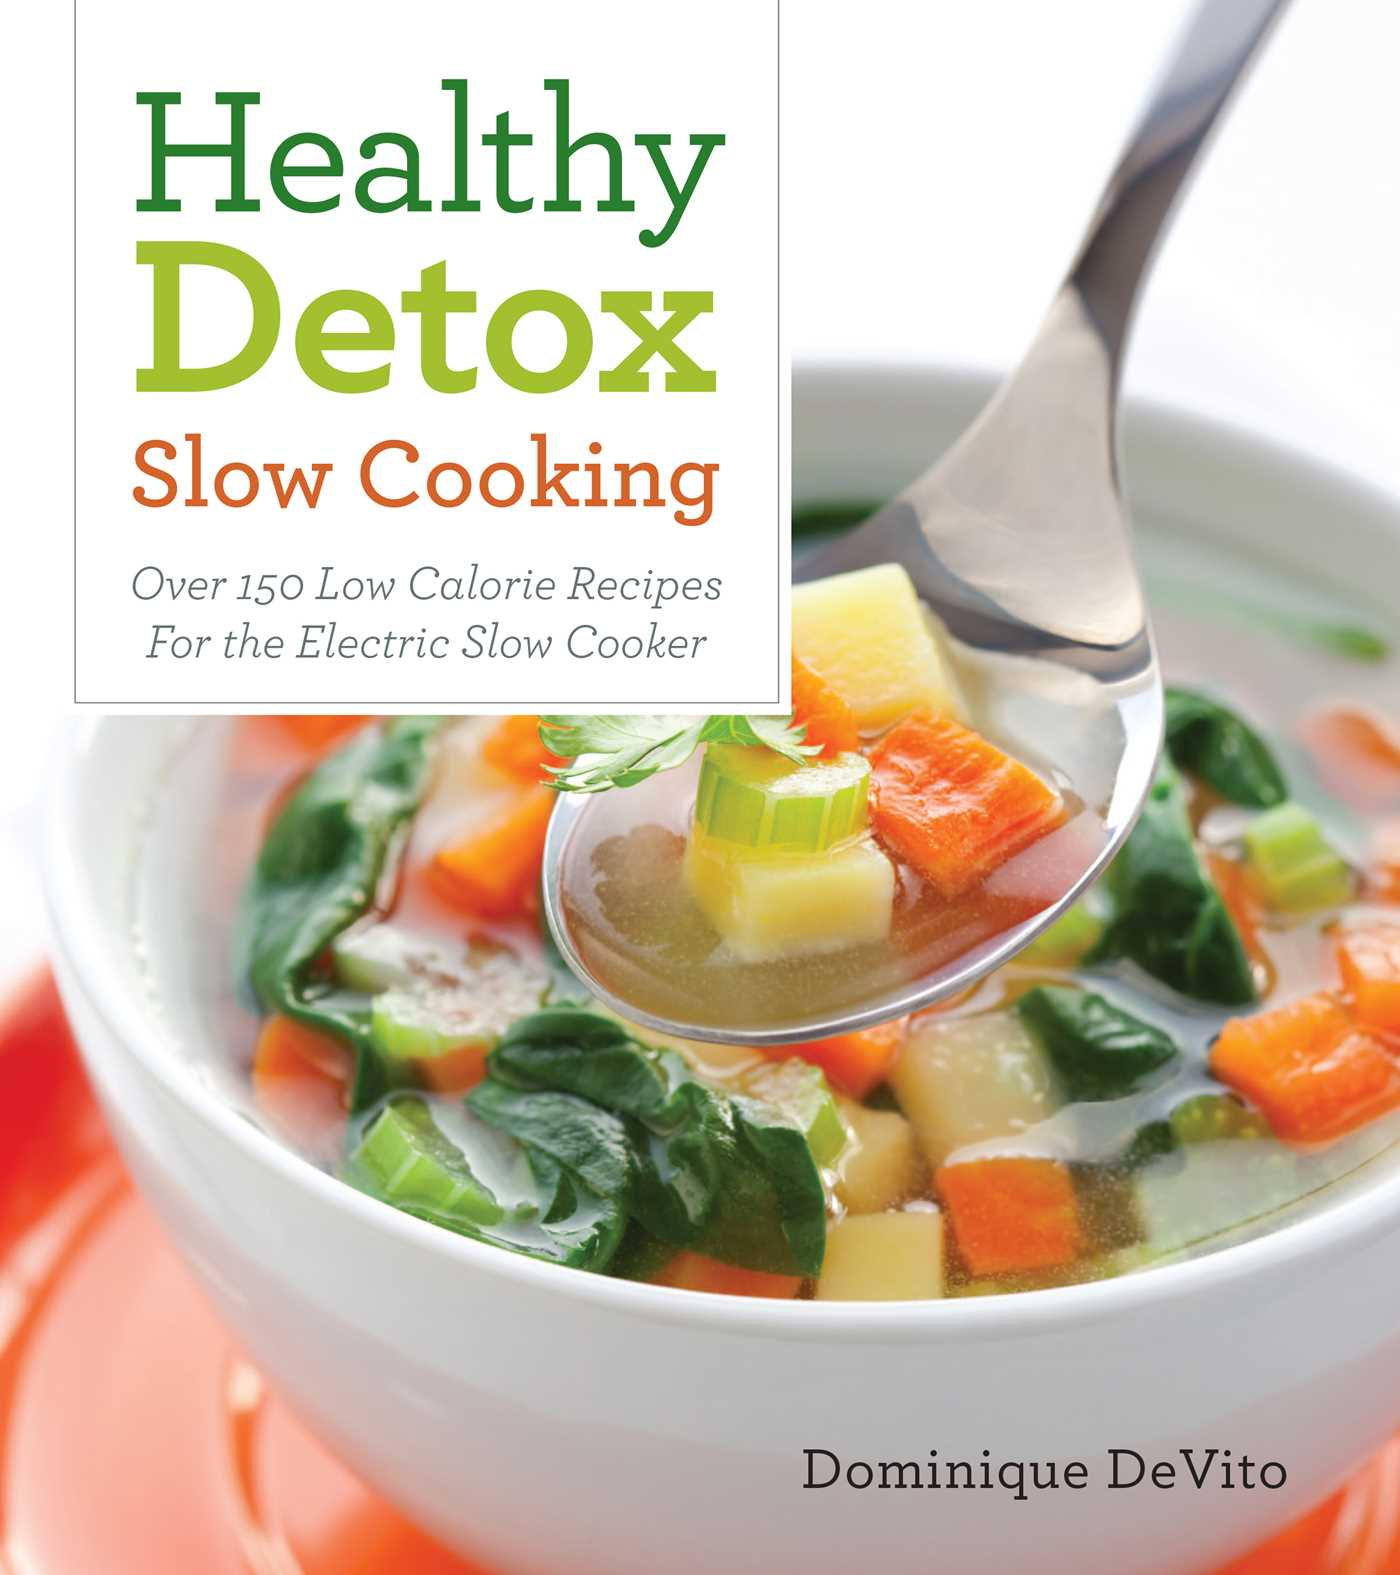 Healthy detox slow cooking ebook by dominique devito official healthy detox slow cooking 9781604335583 hr forumfinder Images